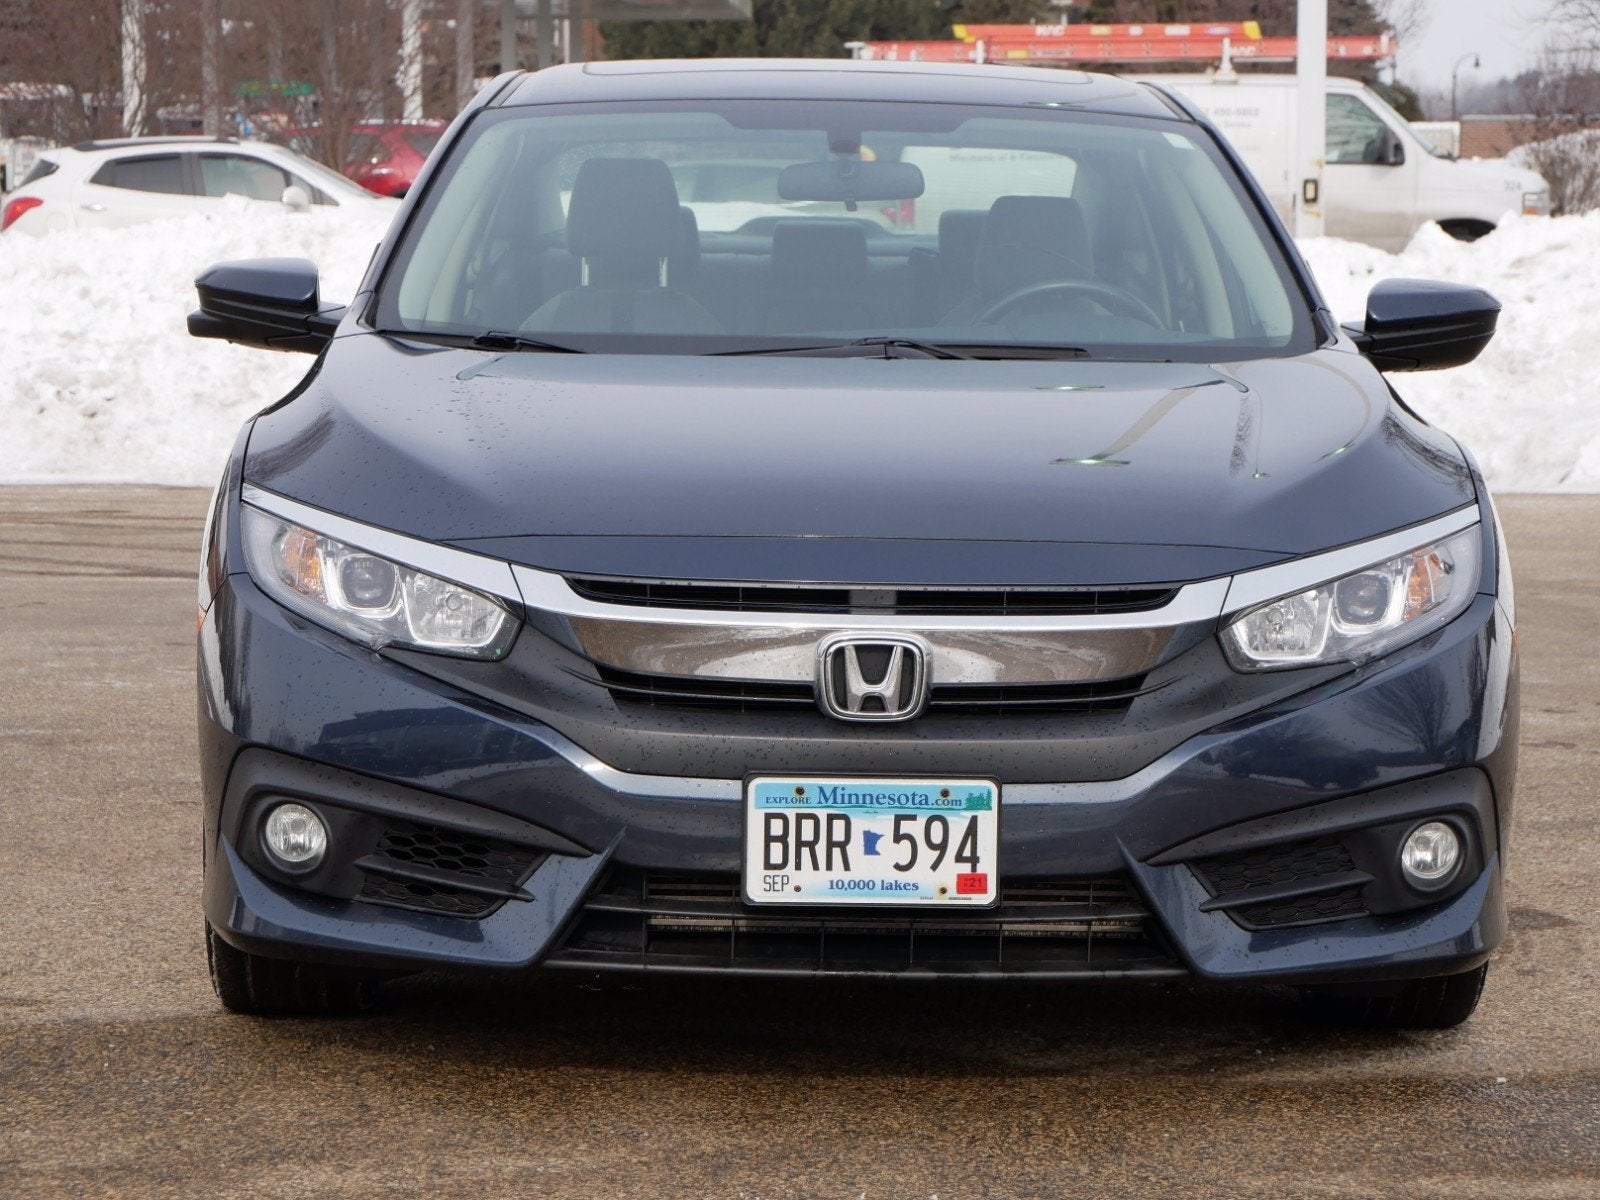 Used 2018 Honda Civic EX-T with VIN JHMFC1F37JX015174 for sale in Apple Valley, Minnesota